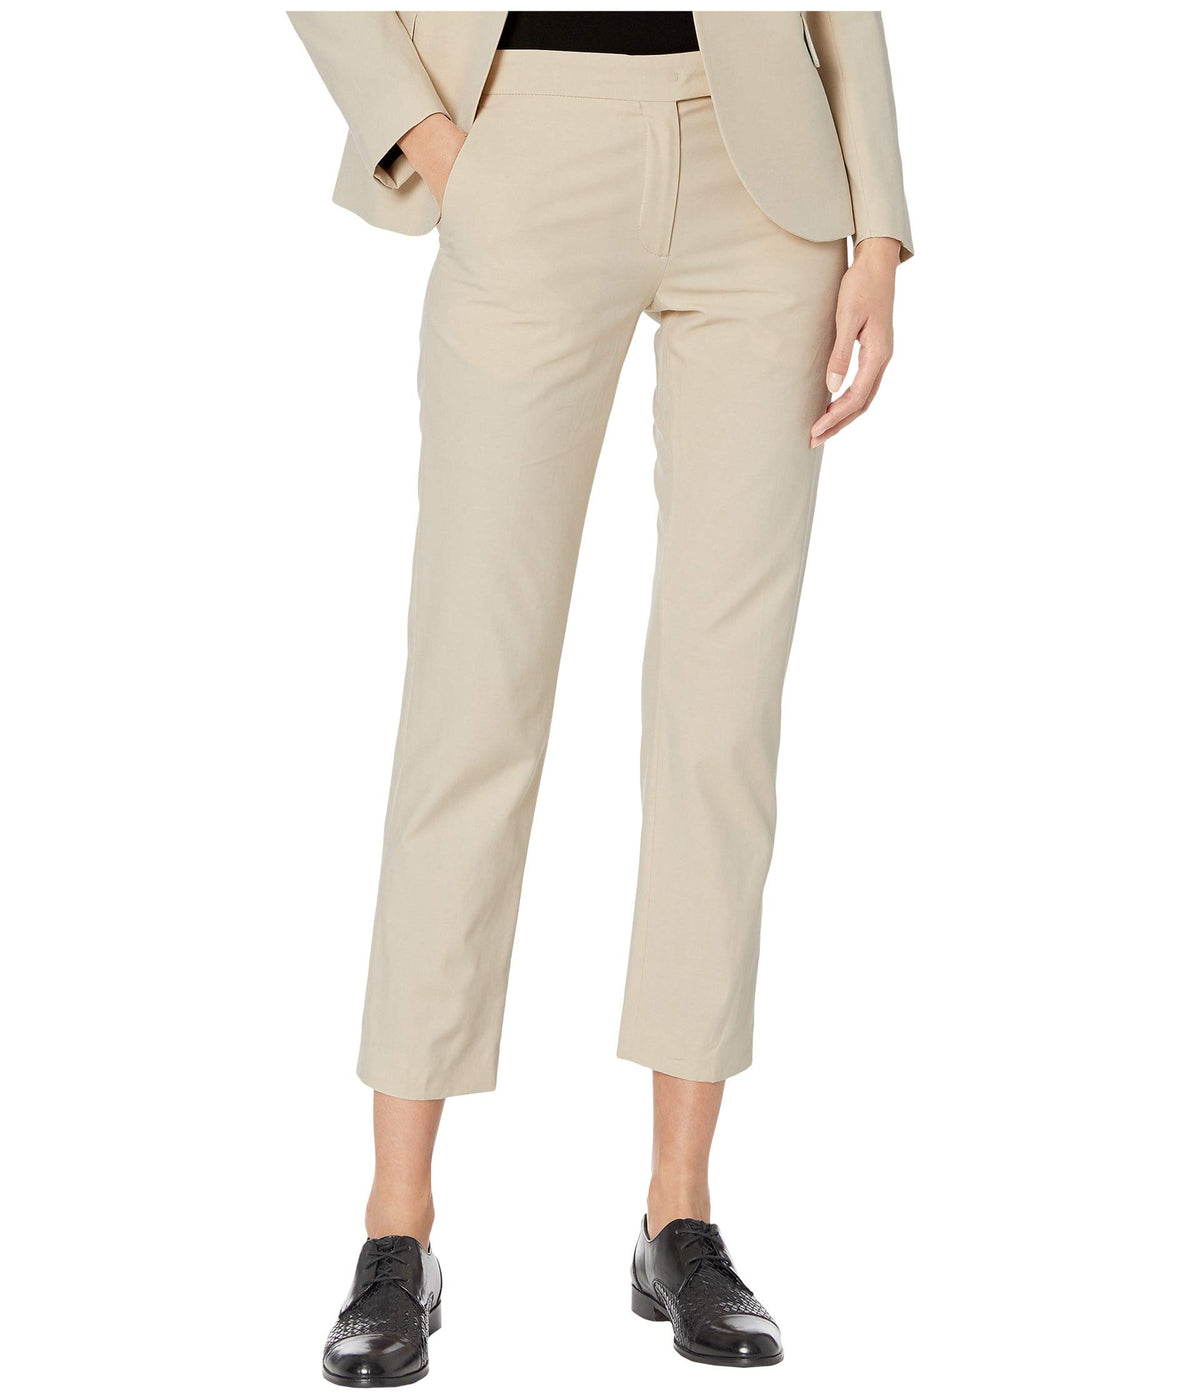 PS Cotton/Viscose Trousers